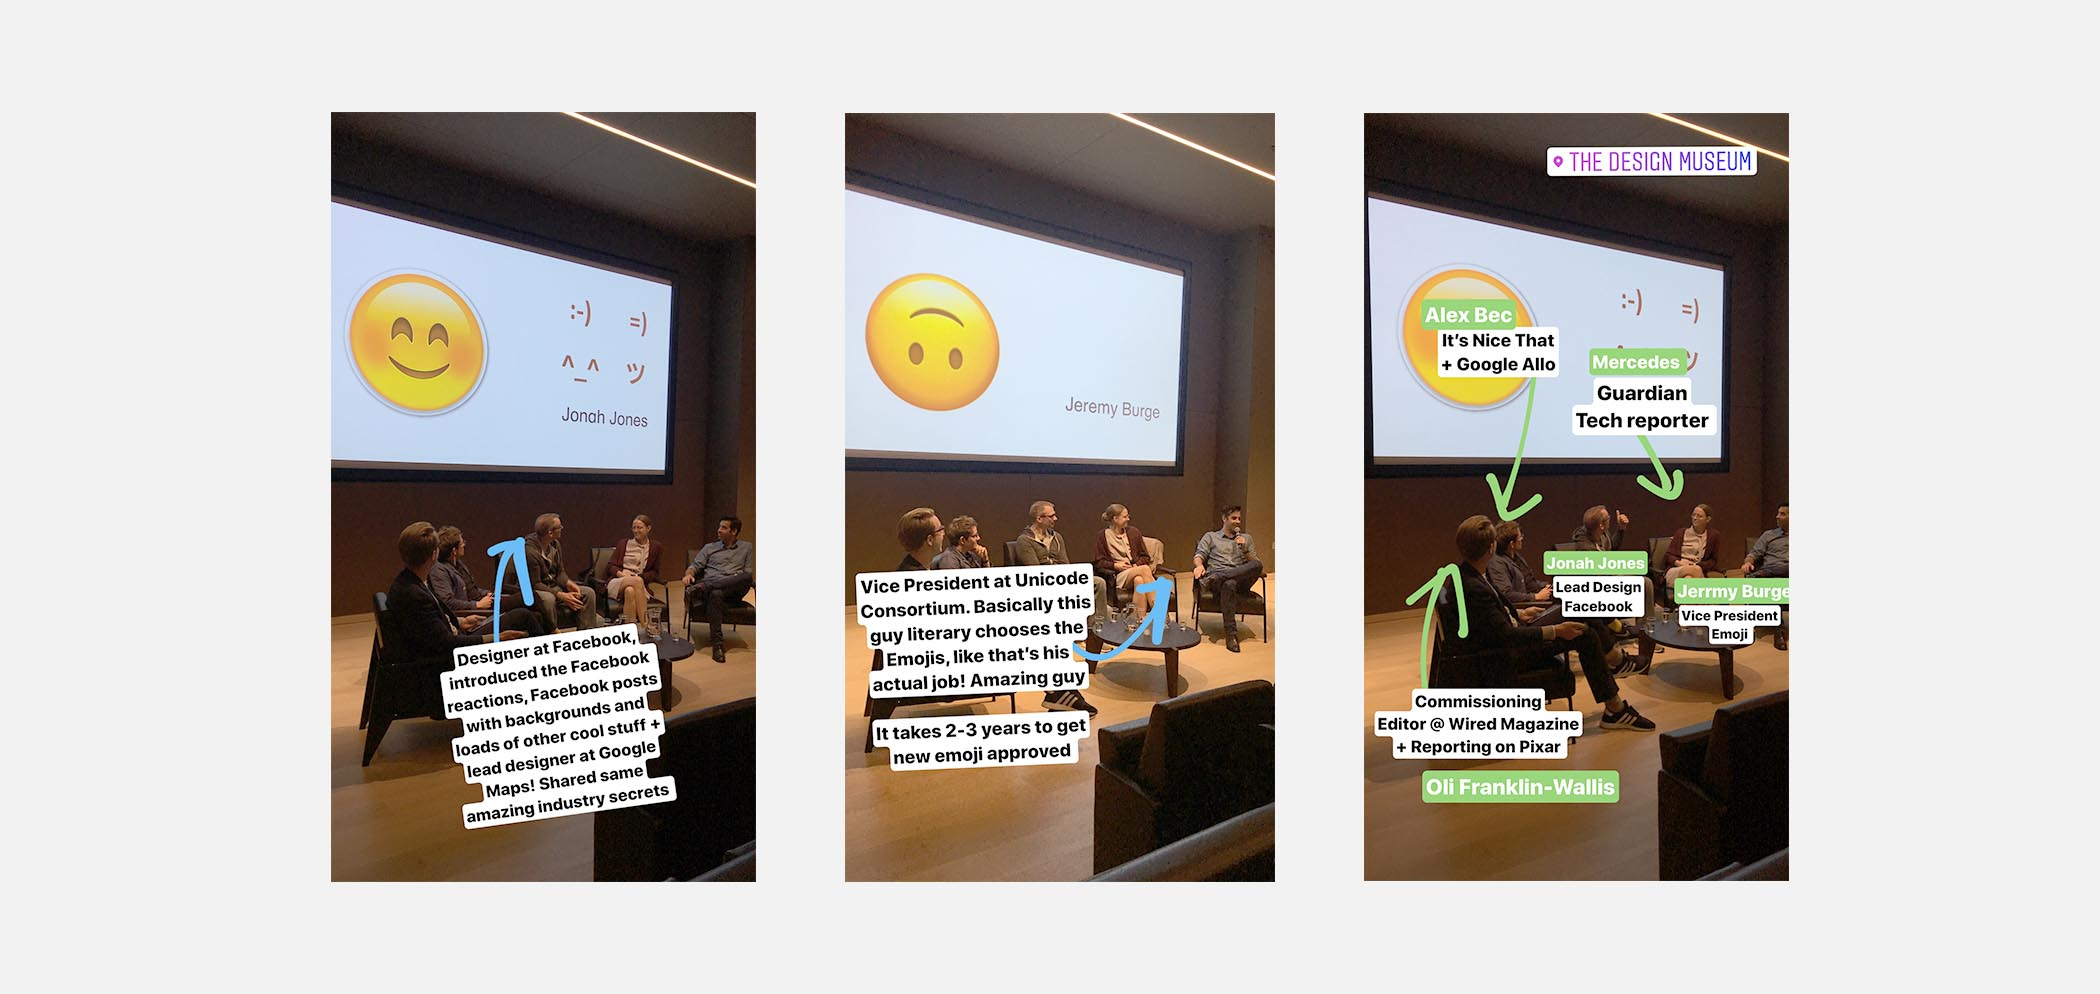 Instagram Stories from the talk